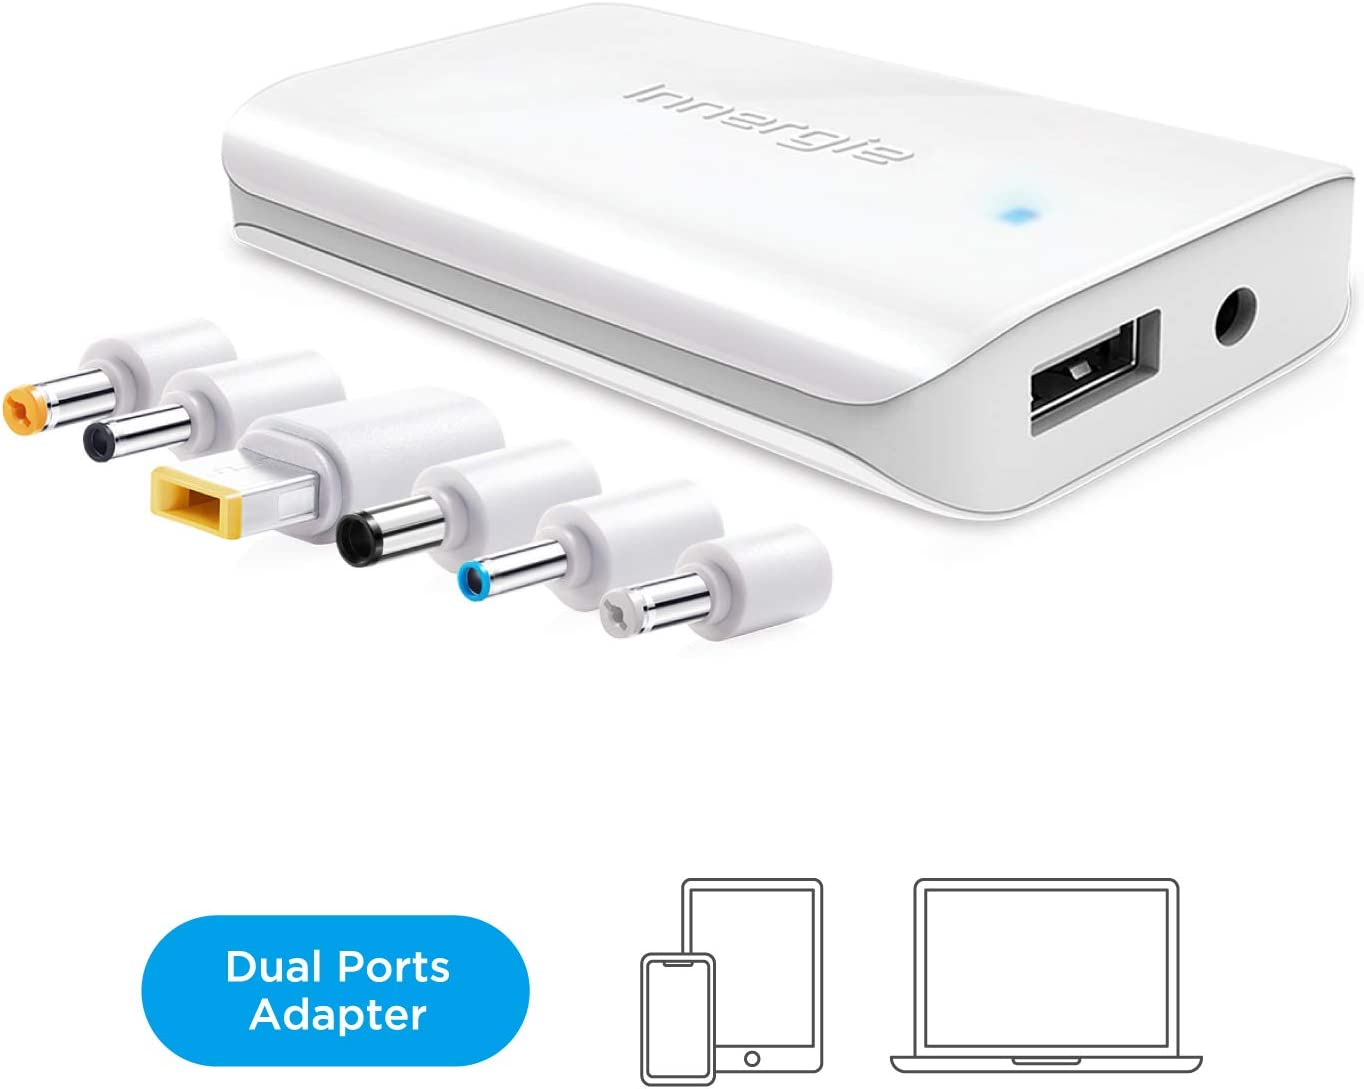 Innergie PowerGear 65 Pro, Dual Port 65W Phone/ Laptop Charger, Power Adapter with 6 Laptop Connectors for Lenovo/ HP/ Dell/ Acer/ASUS & More. USB Port Compatible with iPhone, iPad, Samsung & more